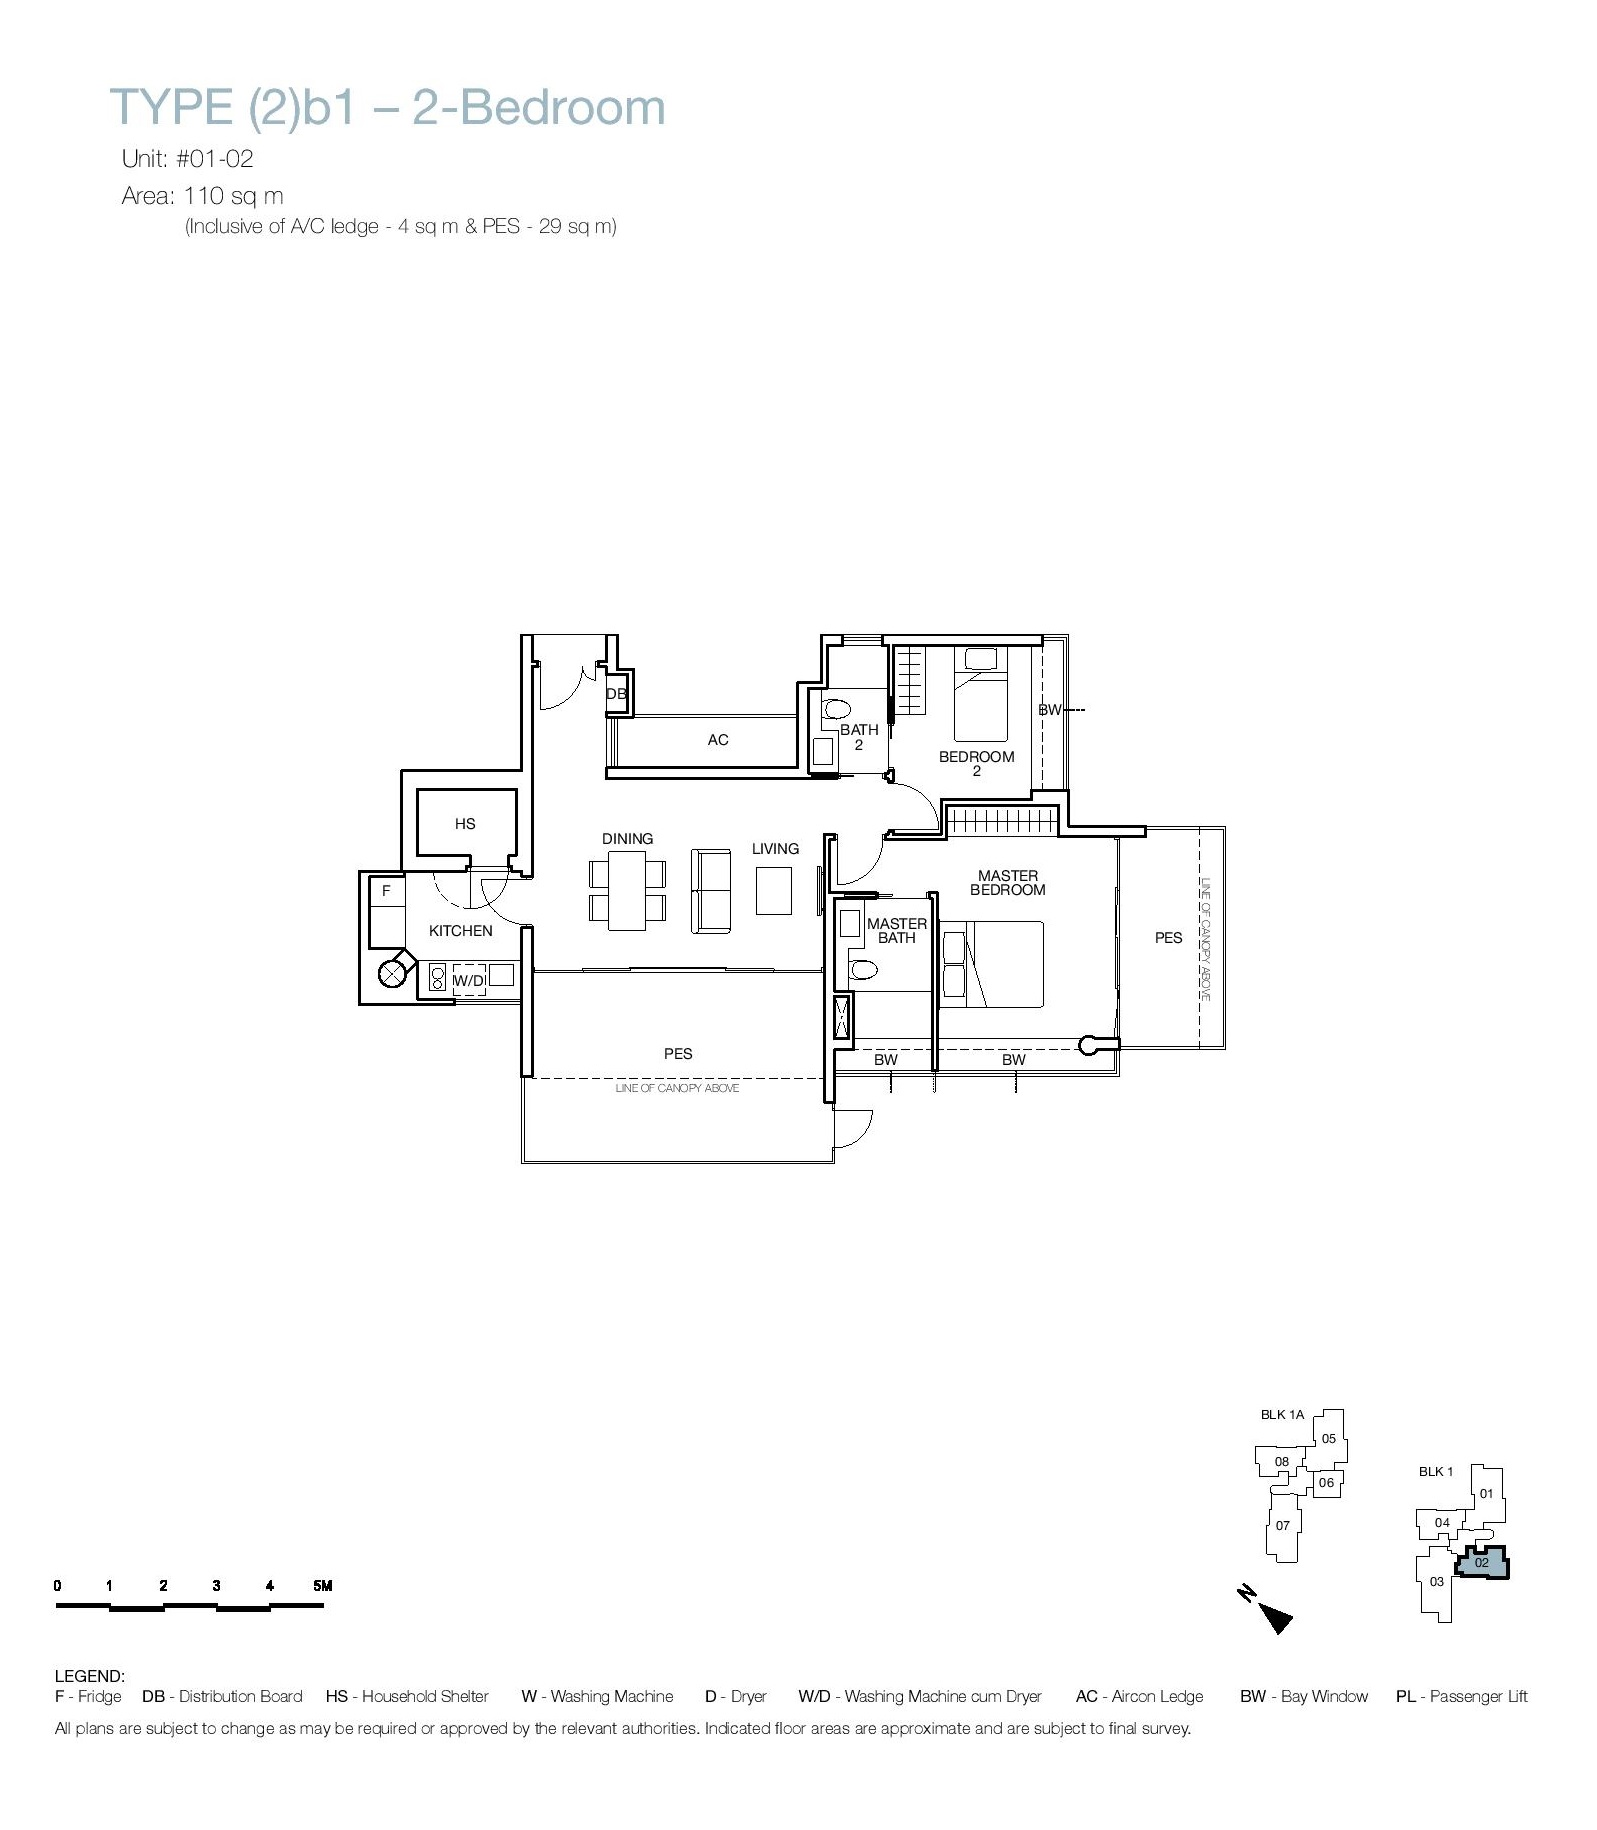 One Balmoral 2 Bedroom Floor Type (2)b1 Plans